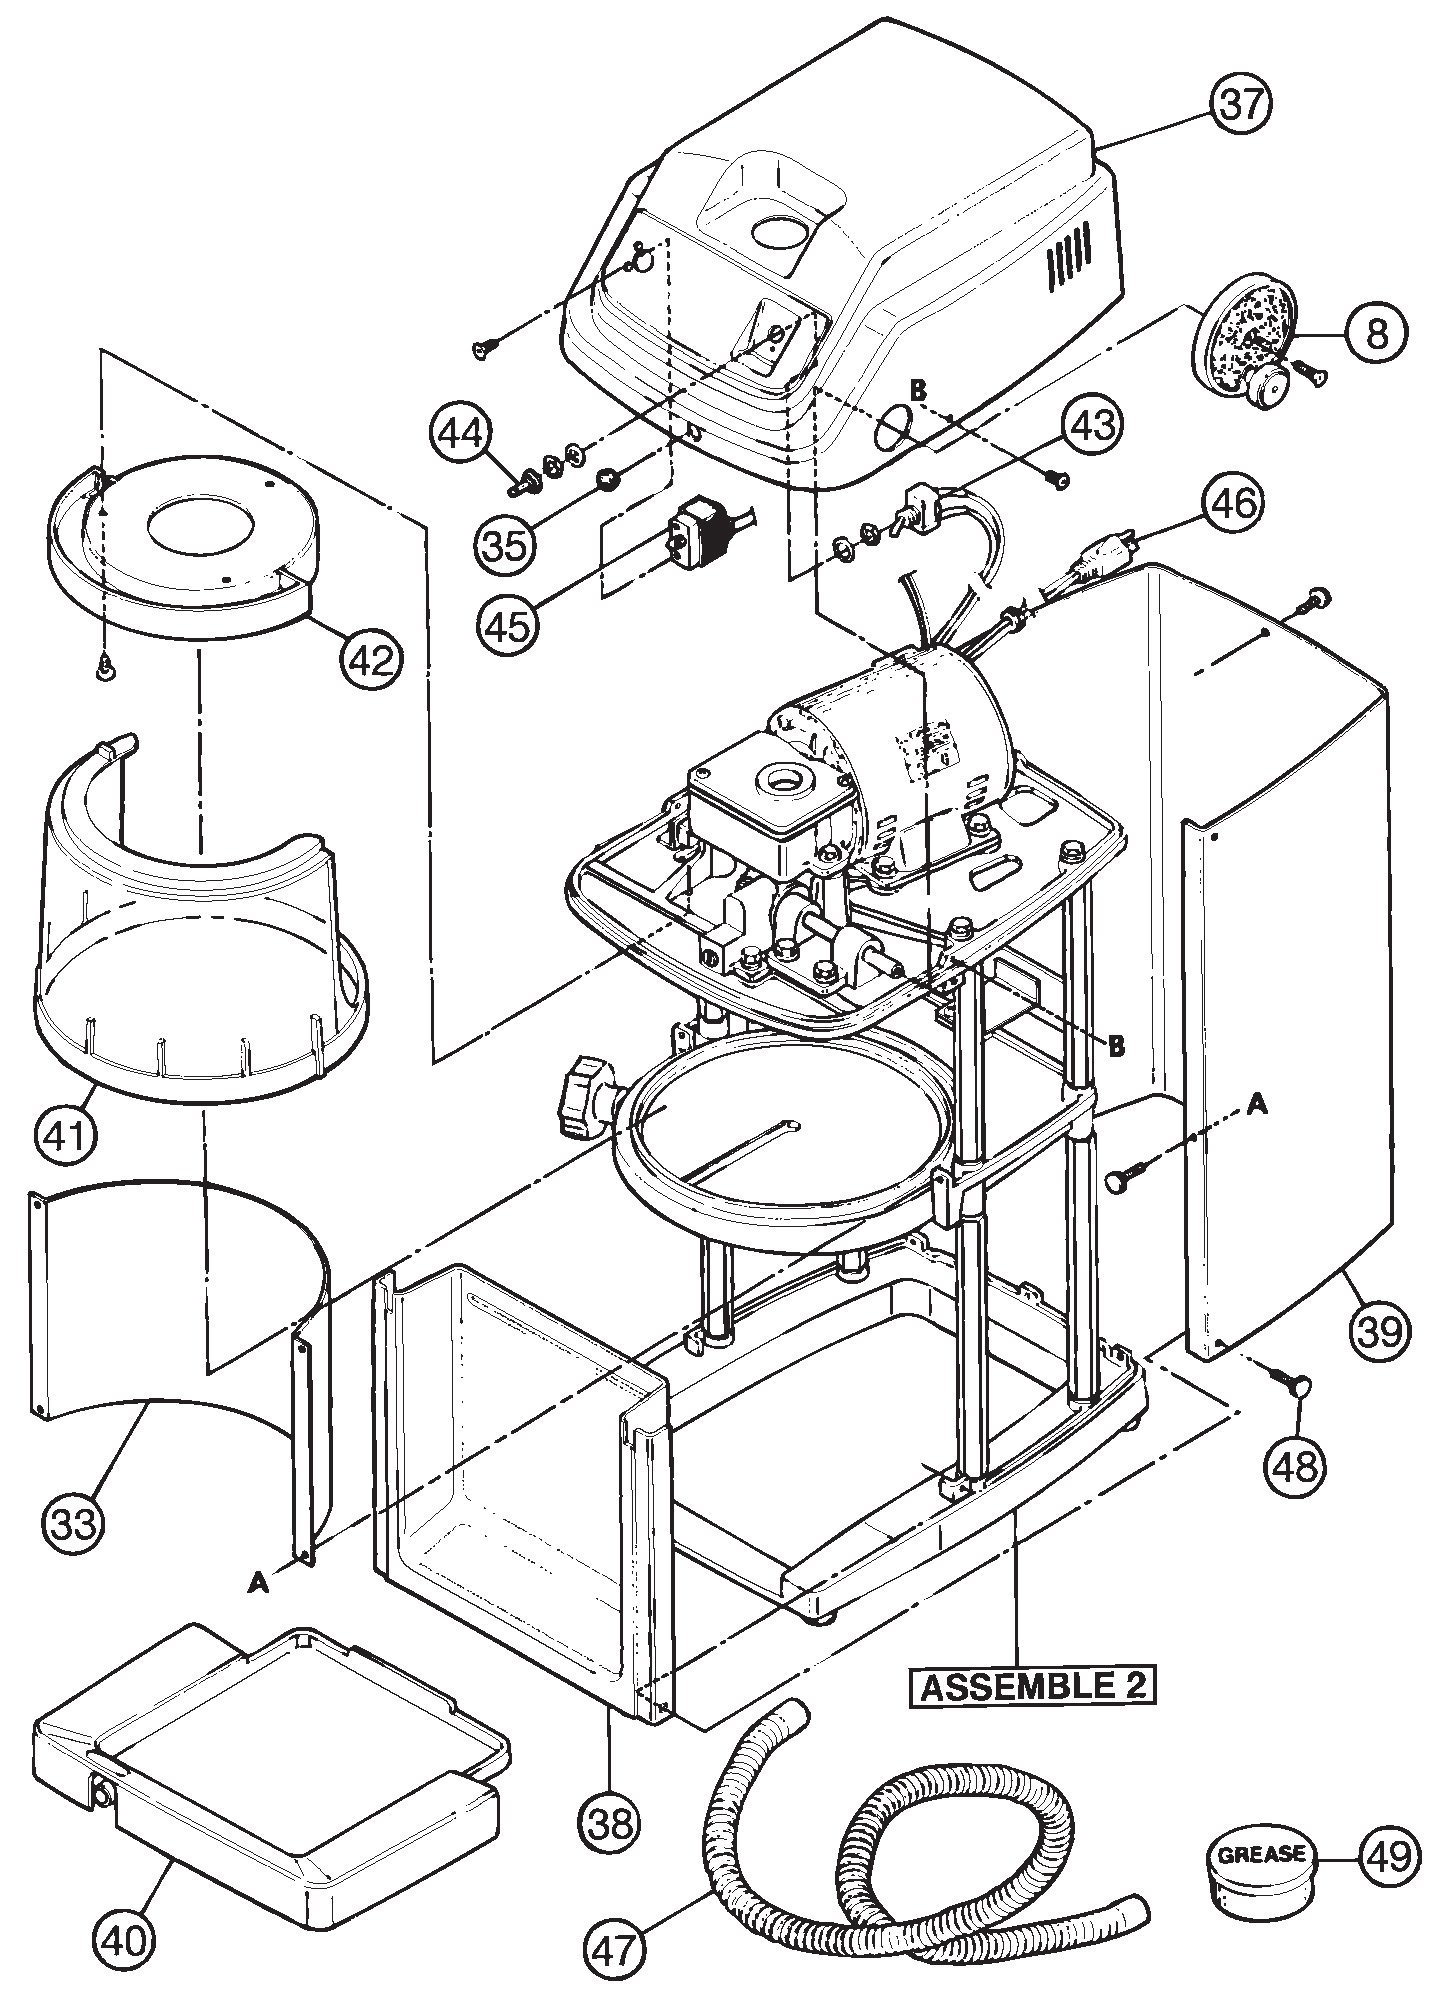 omc king co boat motor wiring diagram c2 ab all wiring diagram Boat Electrical Diagrams omc king co boat motor wiring diagram c2 ab all wiring diagramomc co wiring diagram best